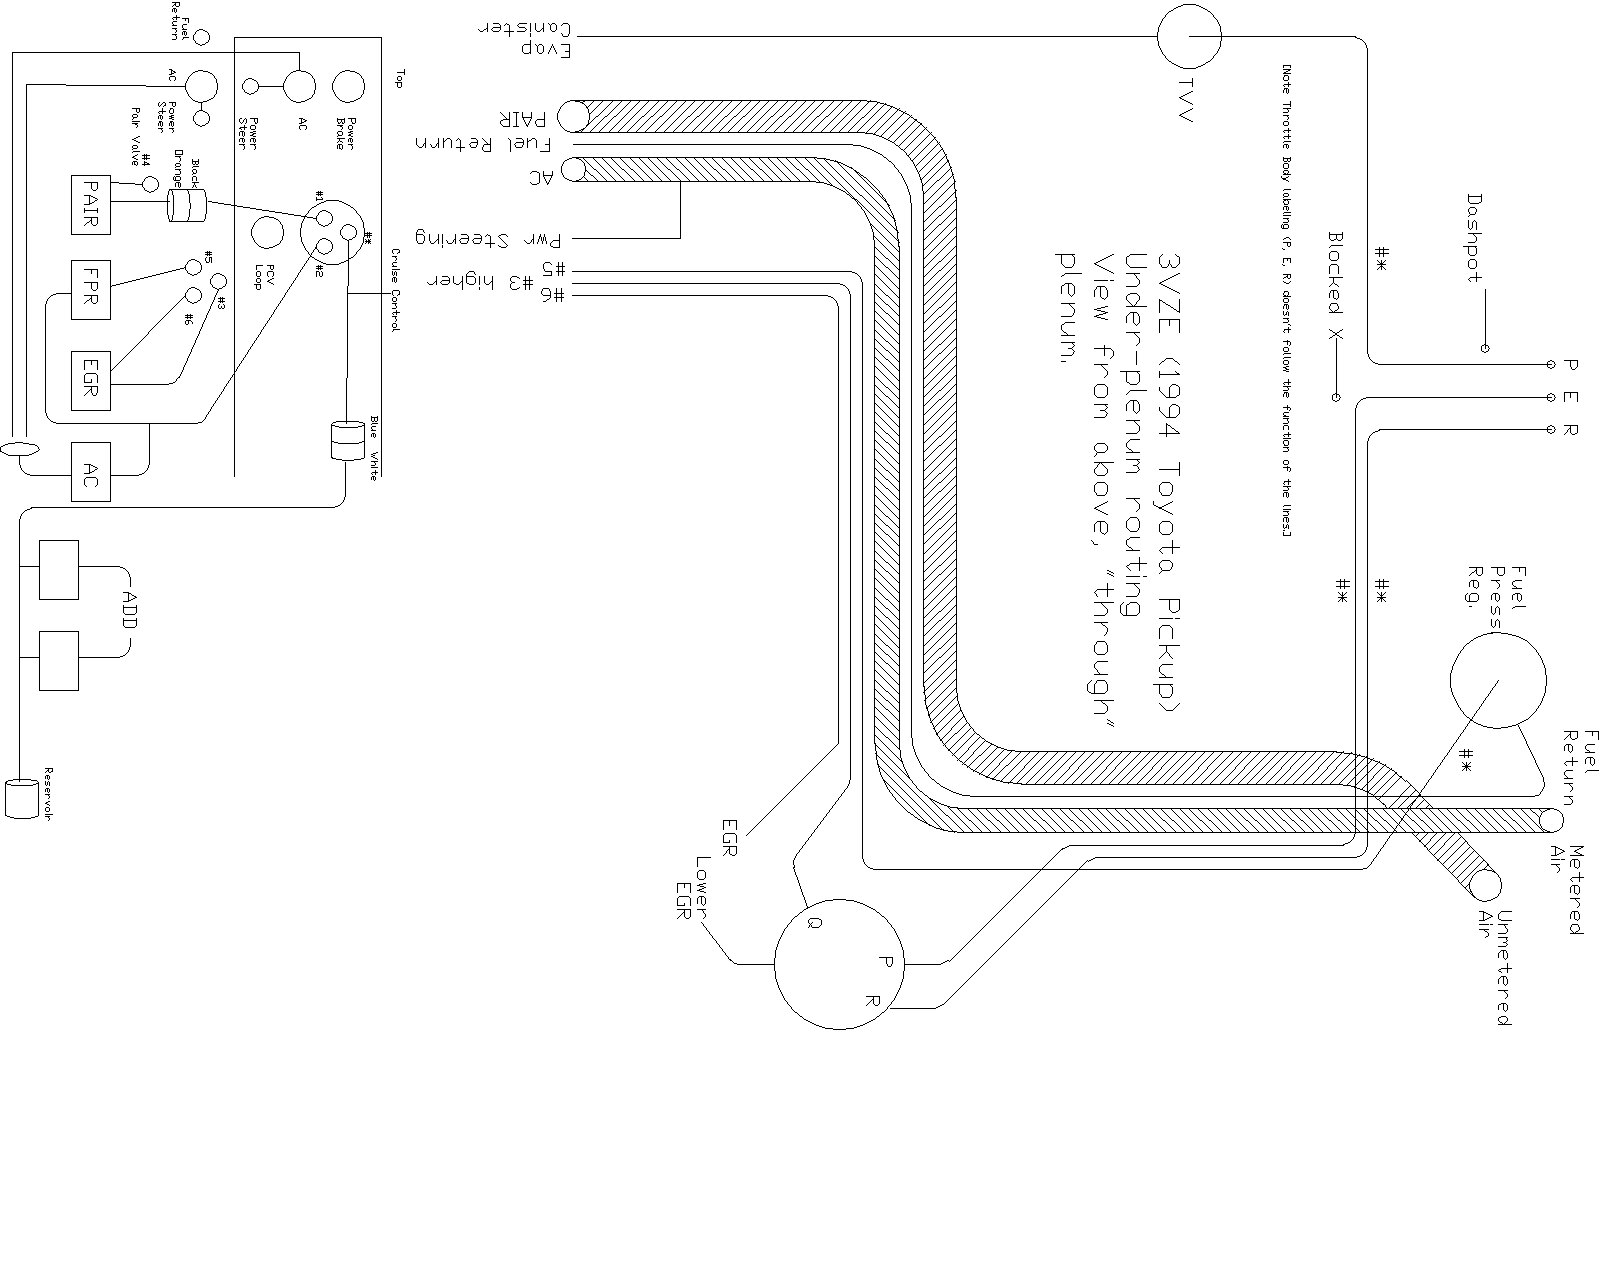 hight resolution of 3000 4000 allison transmission wiring diagram